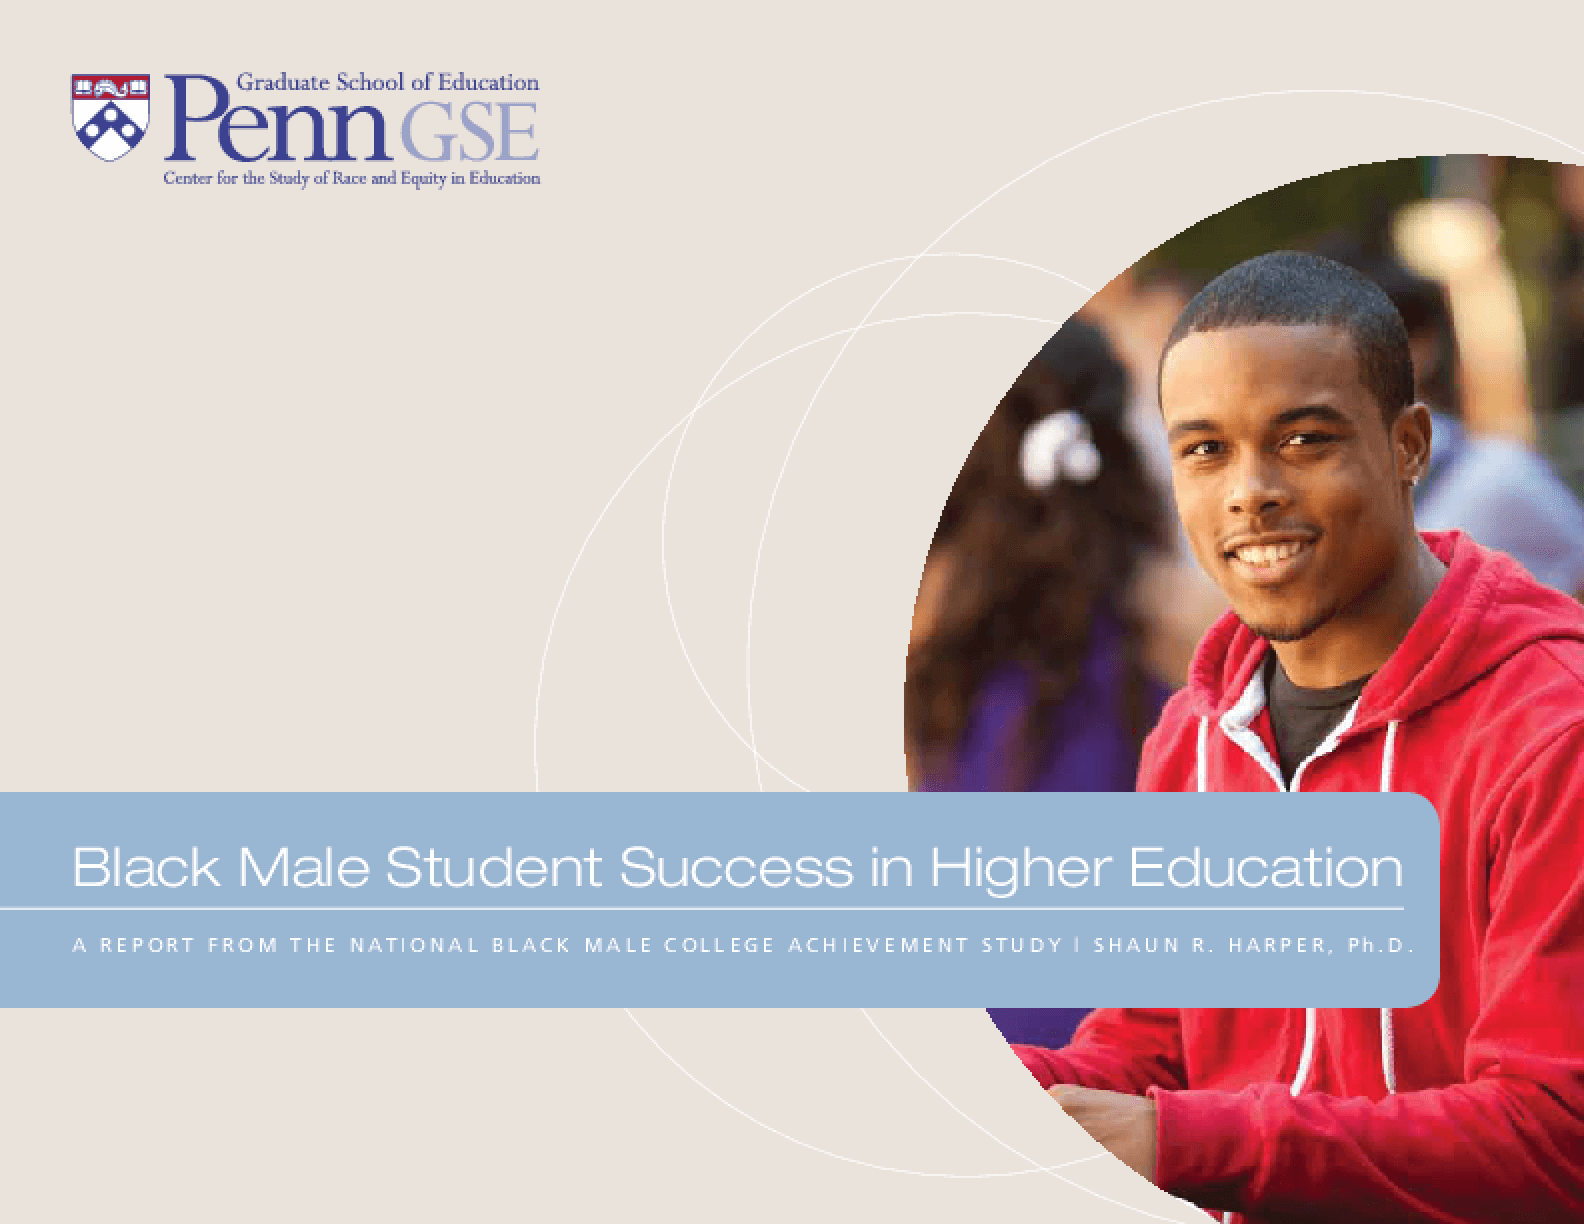 Black Male Student Success in Higher Education: A Report From the National Black Male College Achievement Study